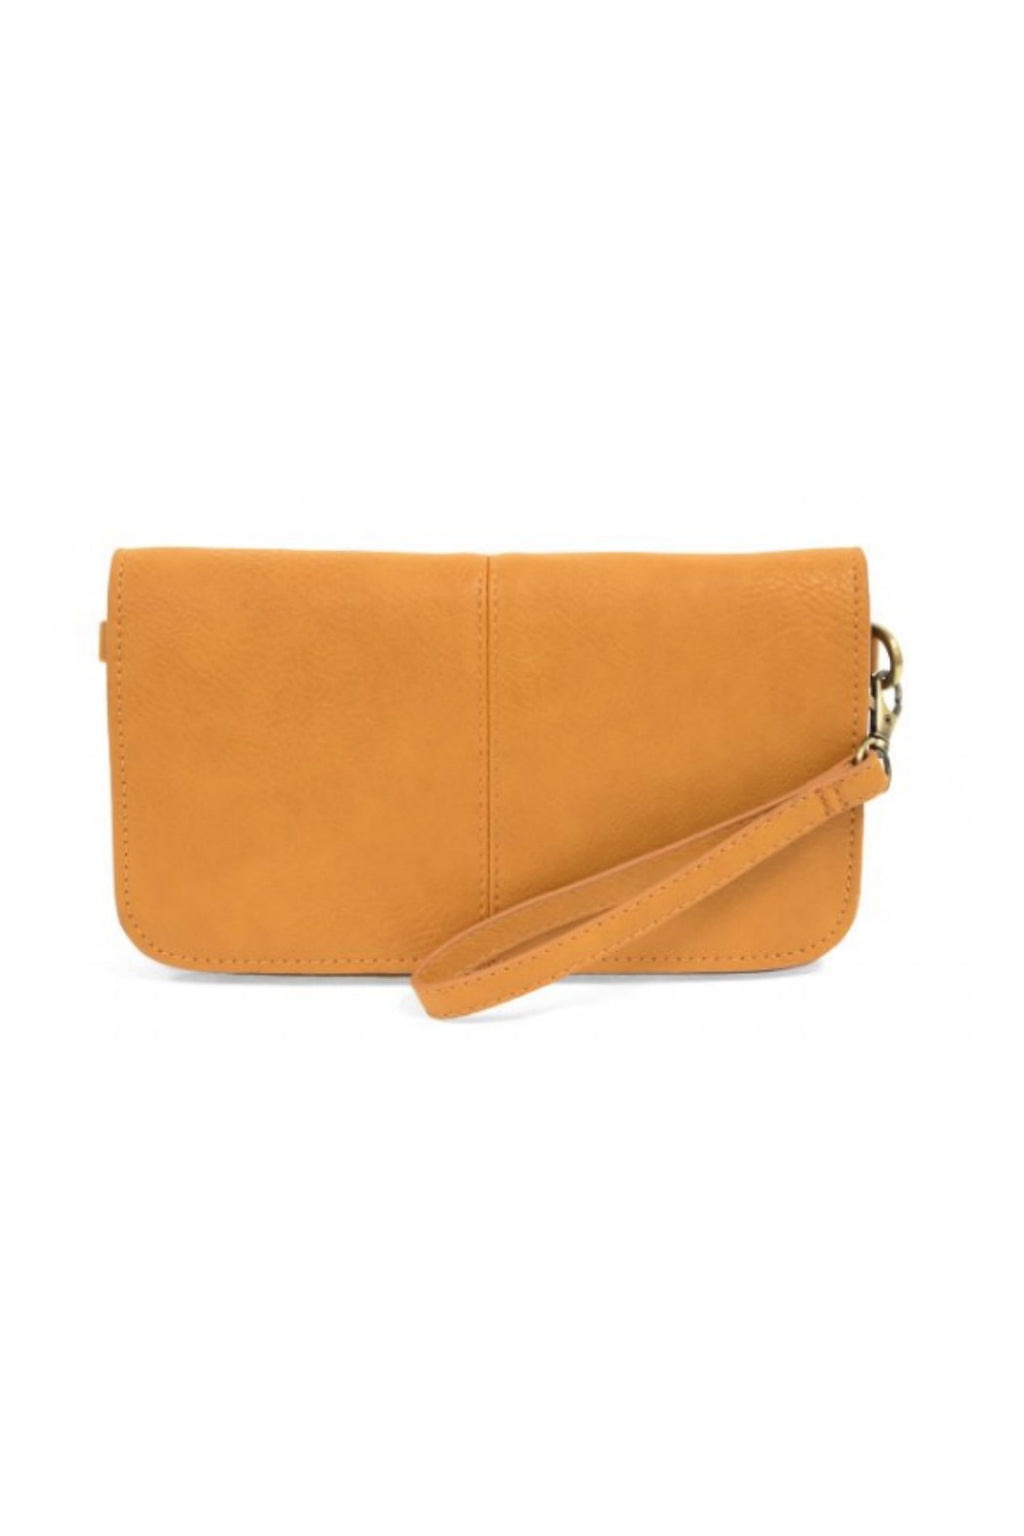 Joy Susan Mia Multi Pocket Crossbody - Amber